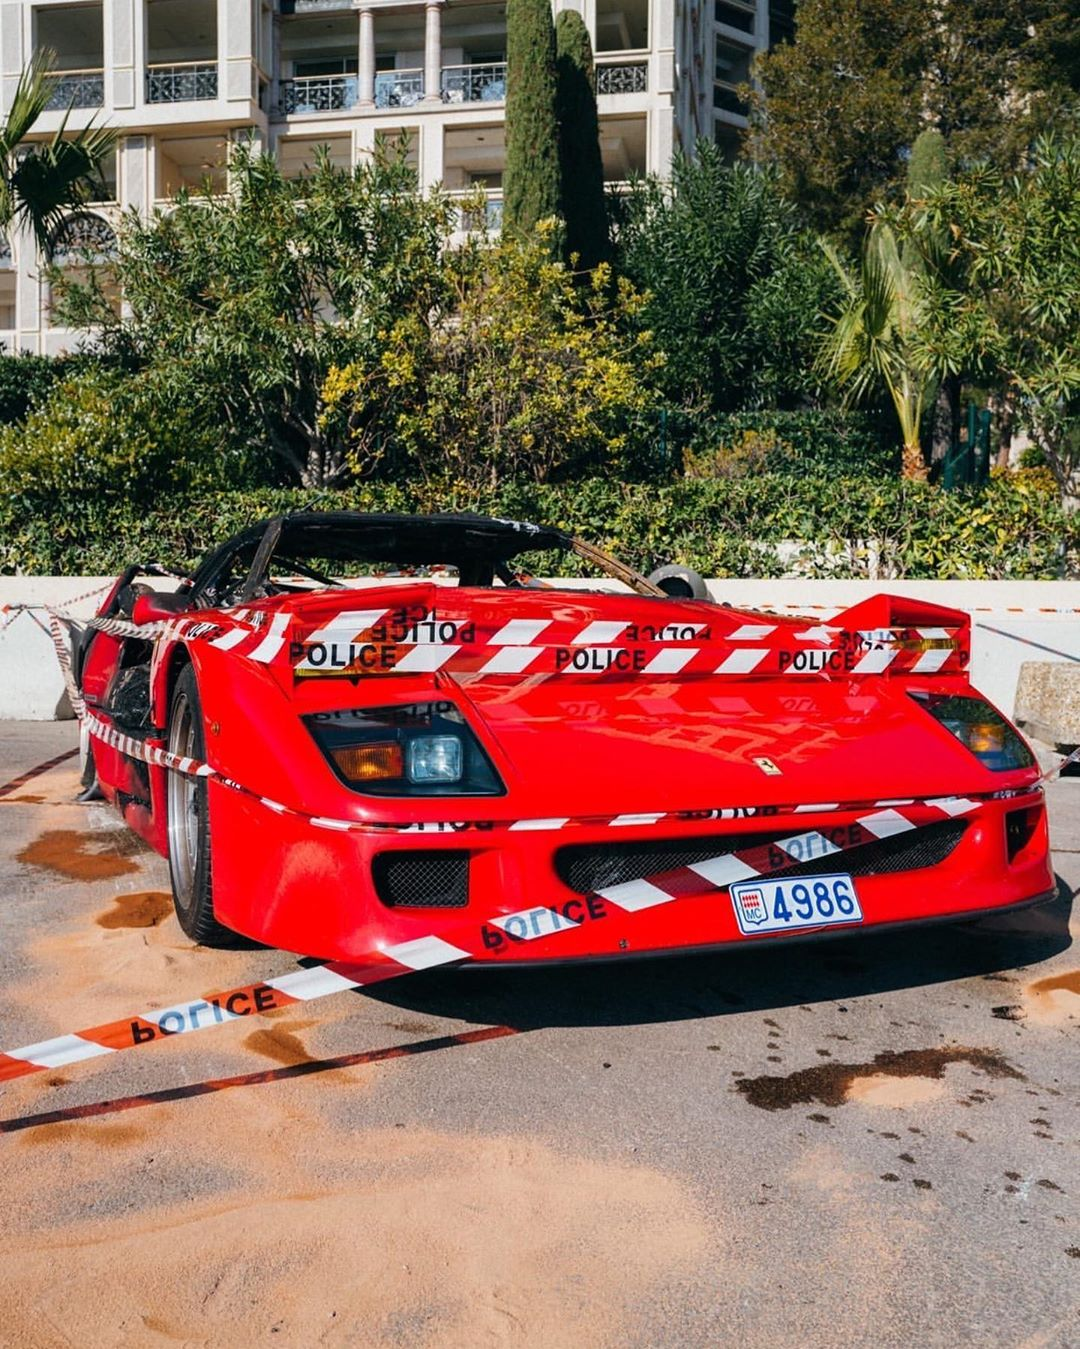 Ferrari_F40_fire_photos_0002